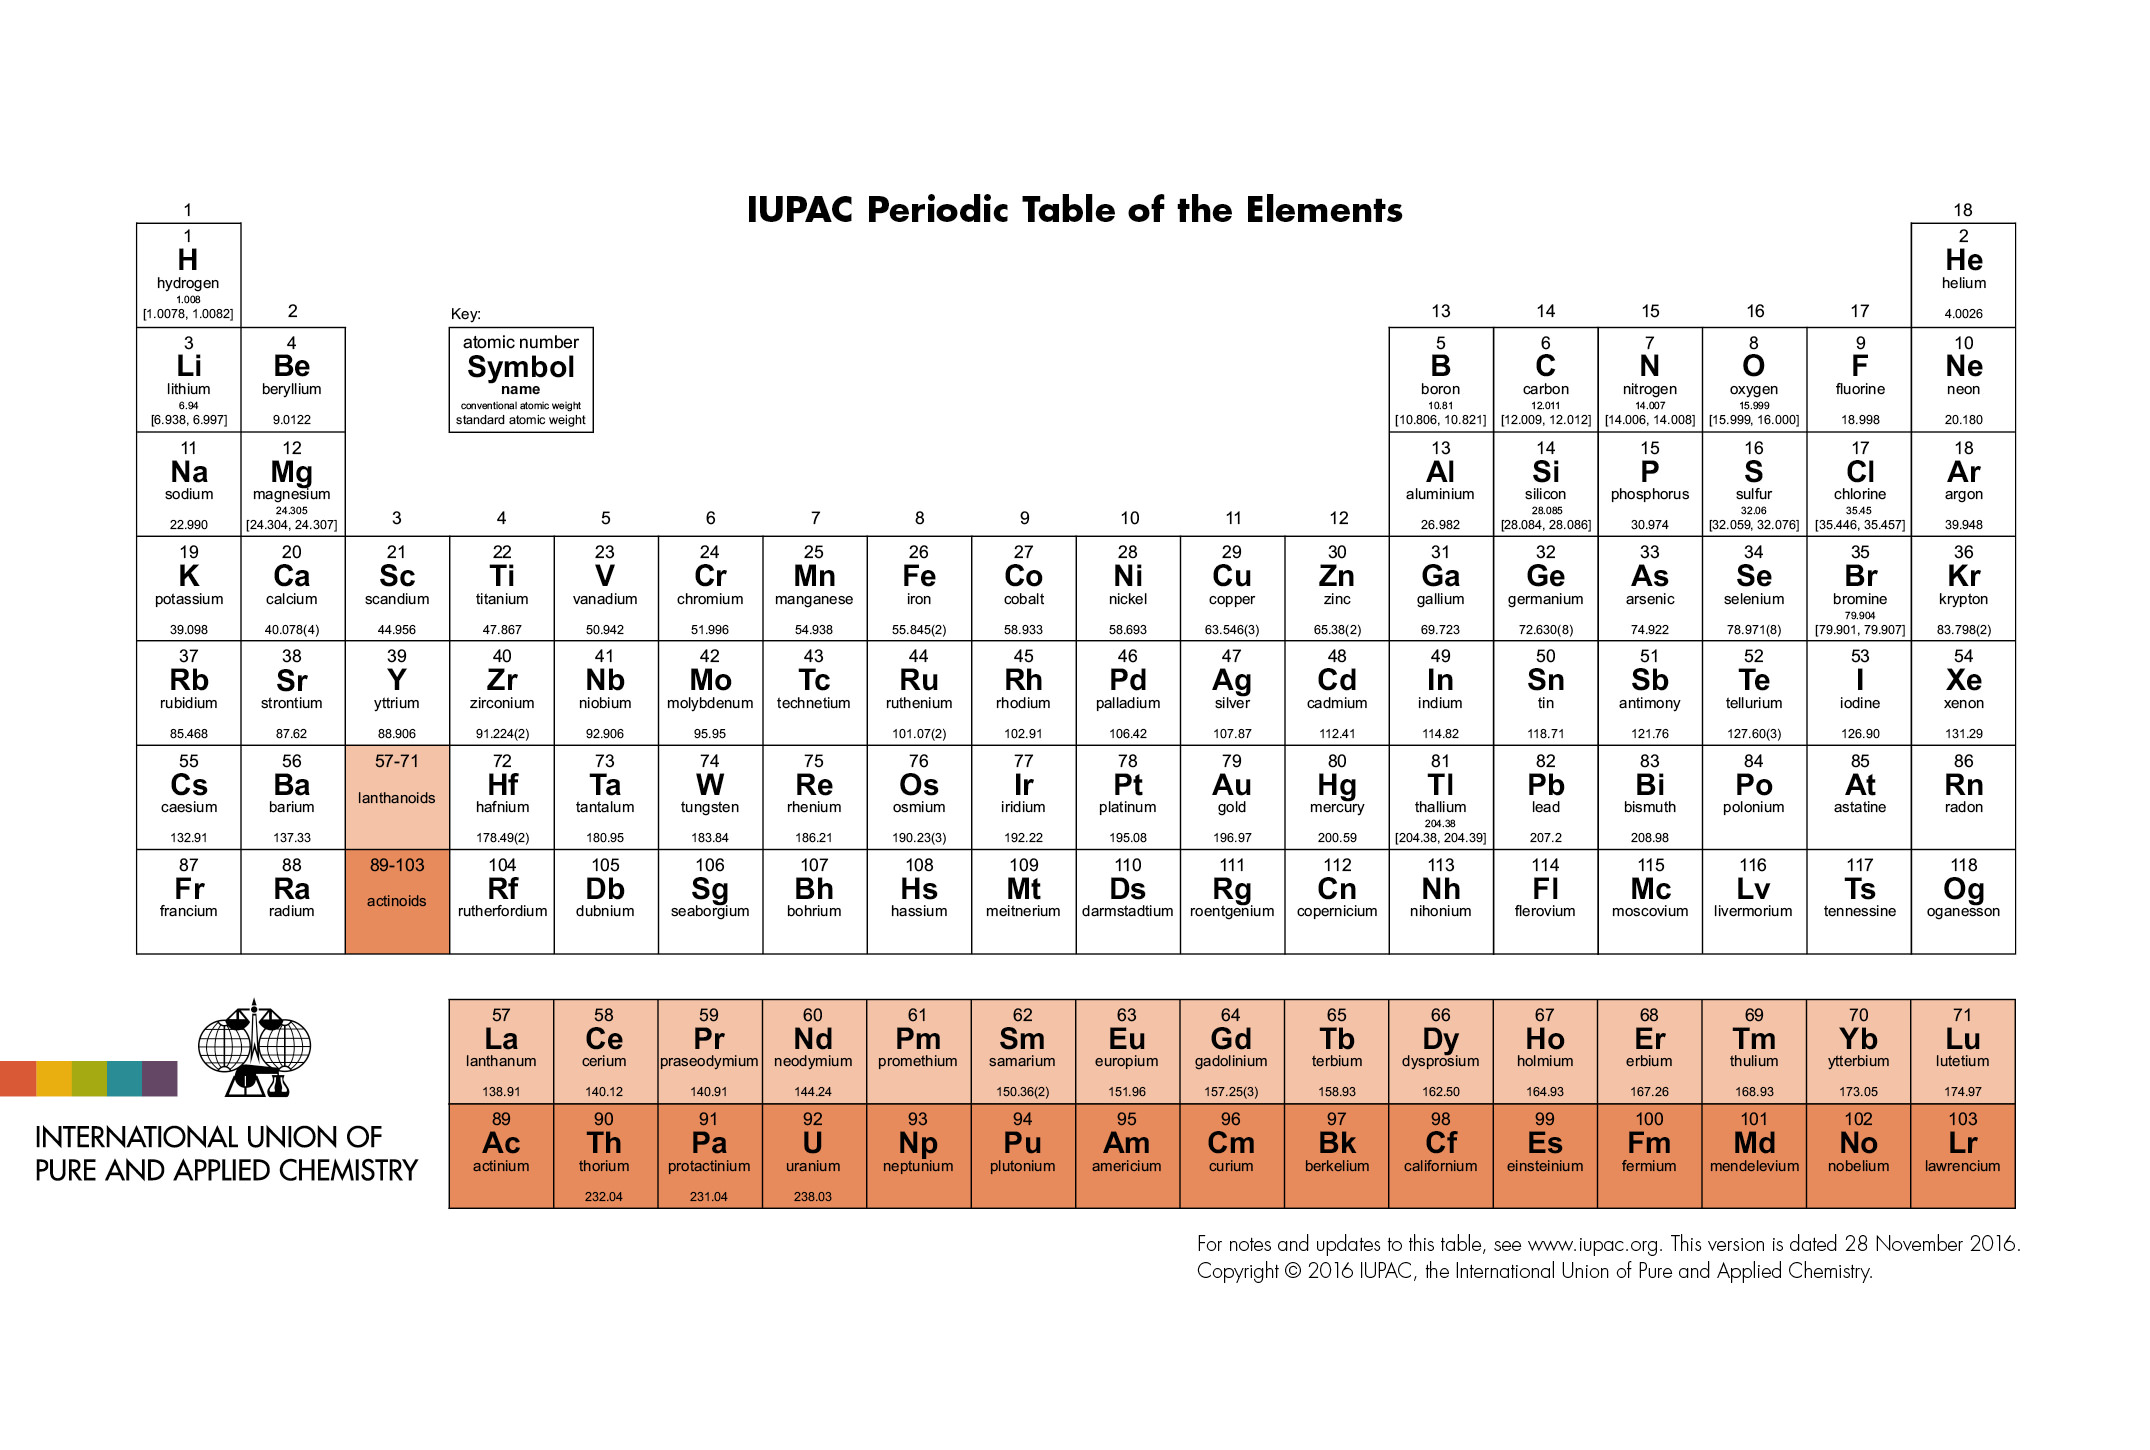 Iupac international union of pure and applied chemistry periodic periodic table of elements urtaz Image collections